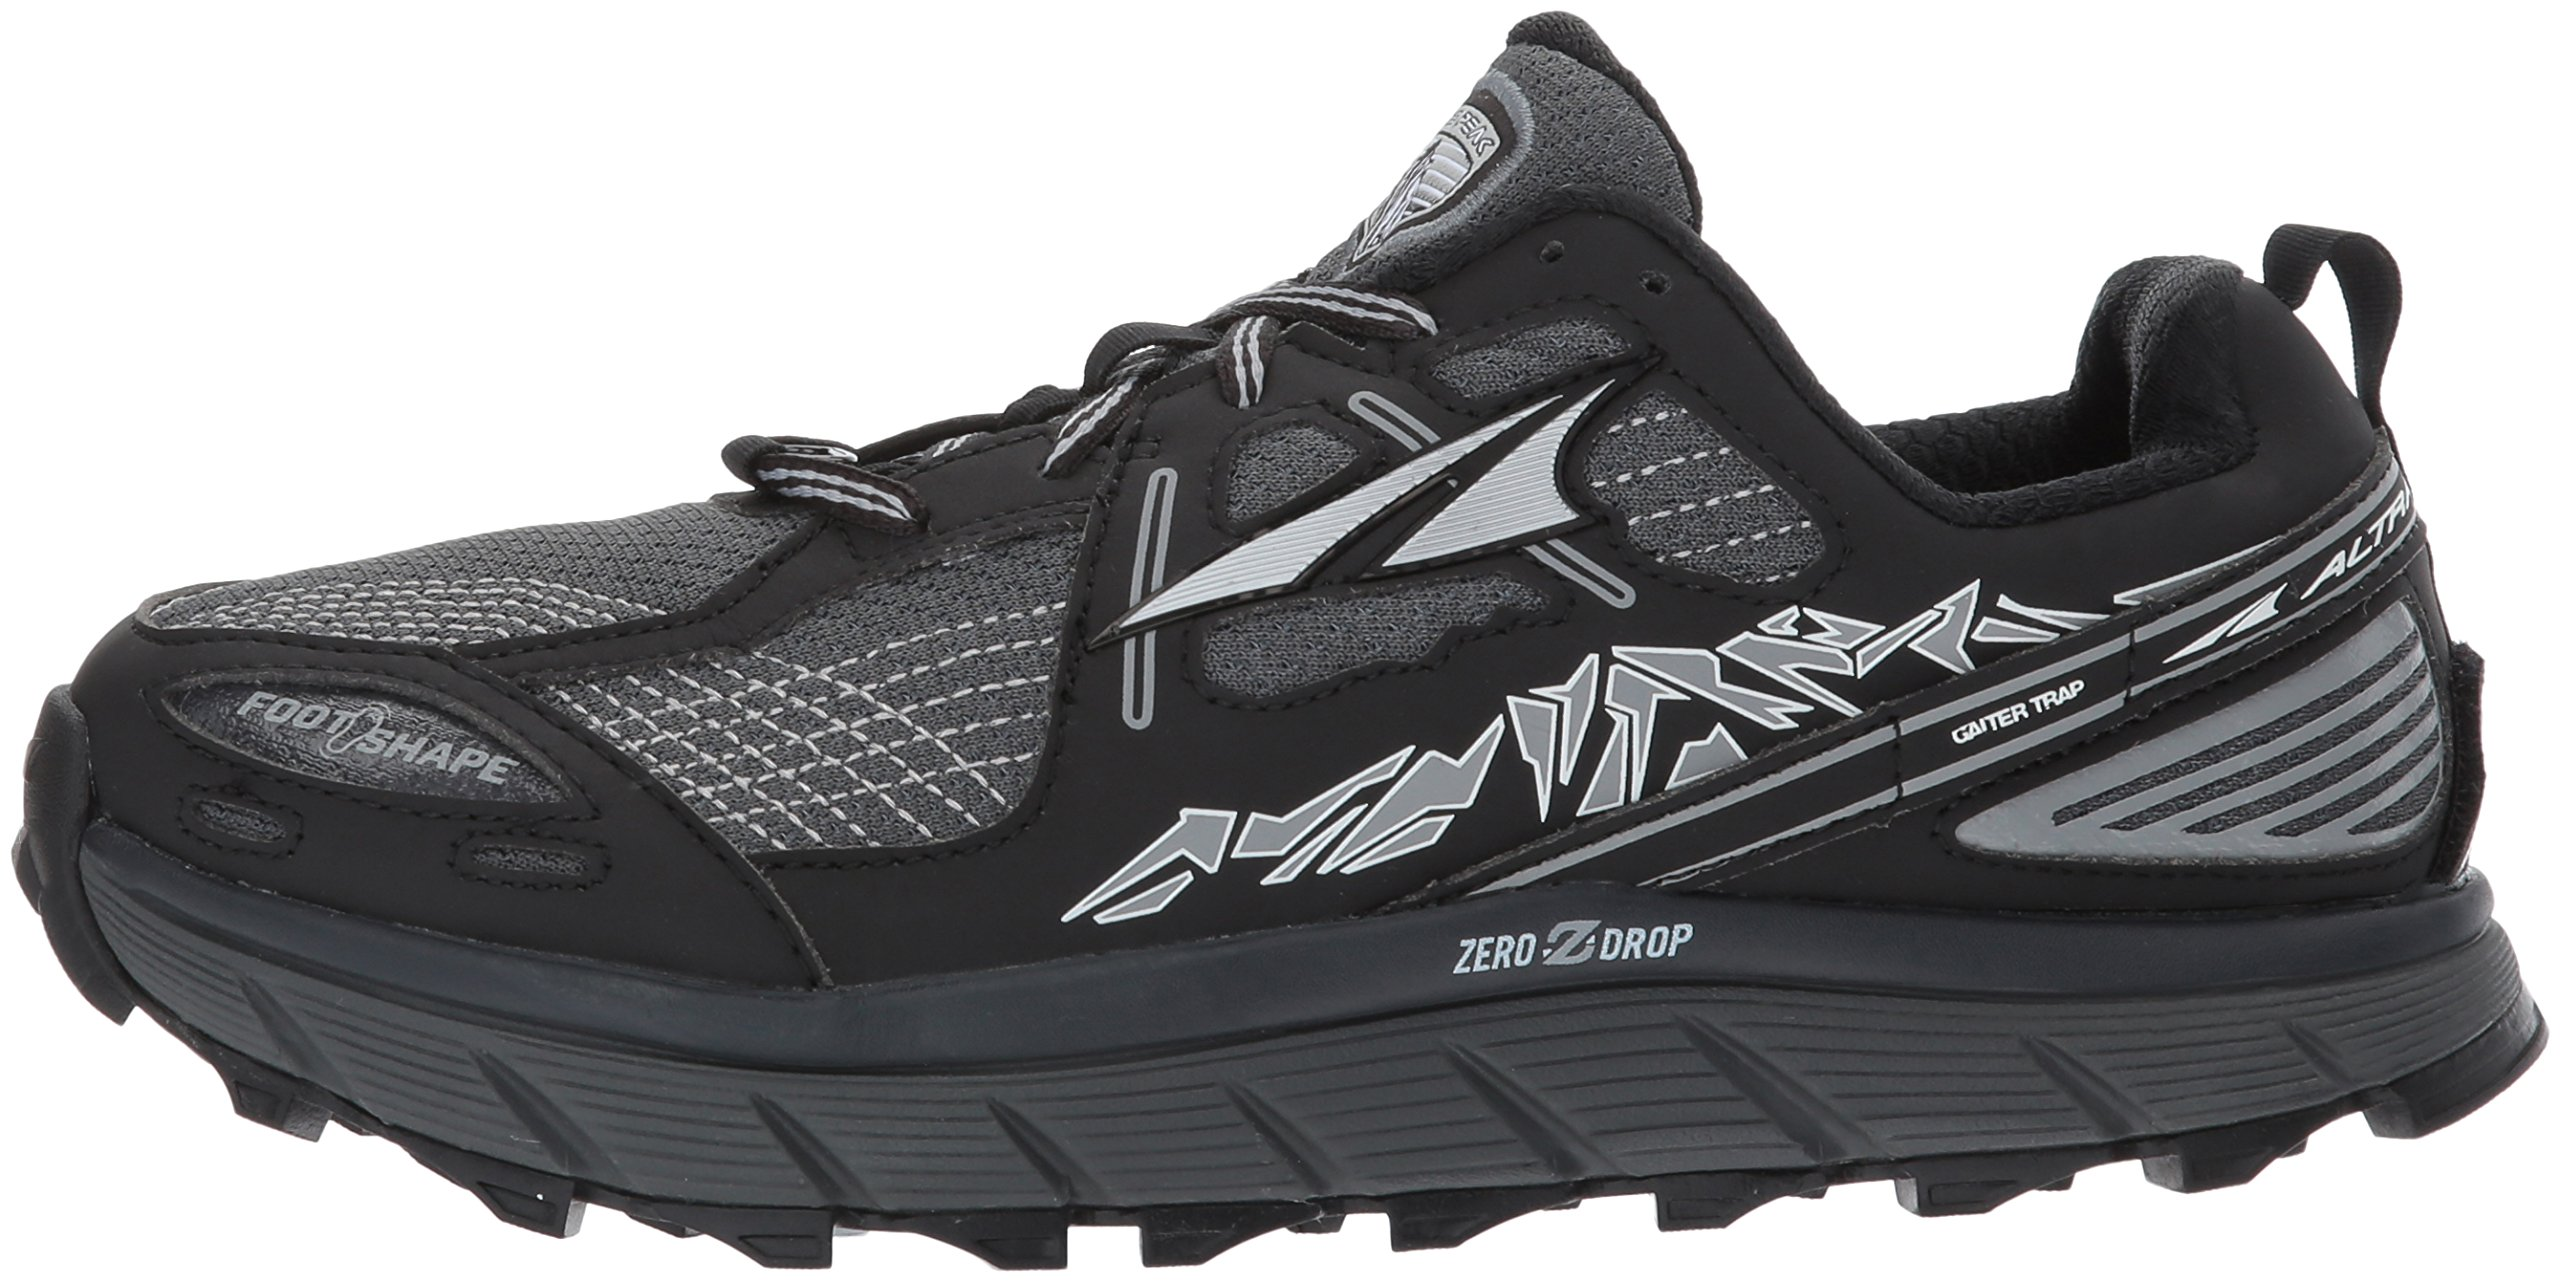 Altra Women's Lone Peak 3.5 Running Shoe, Black, 8.5 B US by Altra (Image #5)